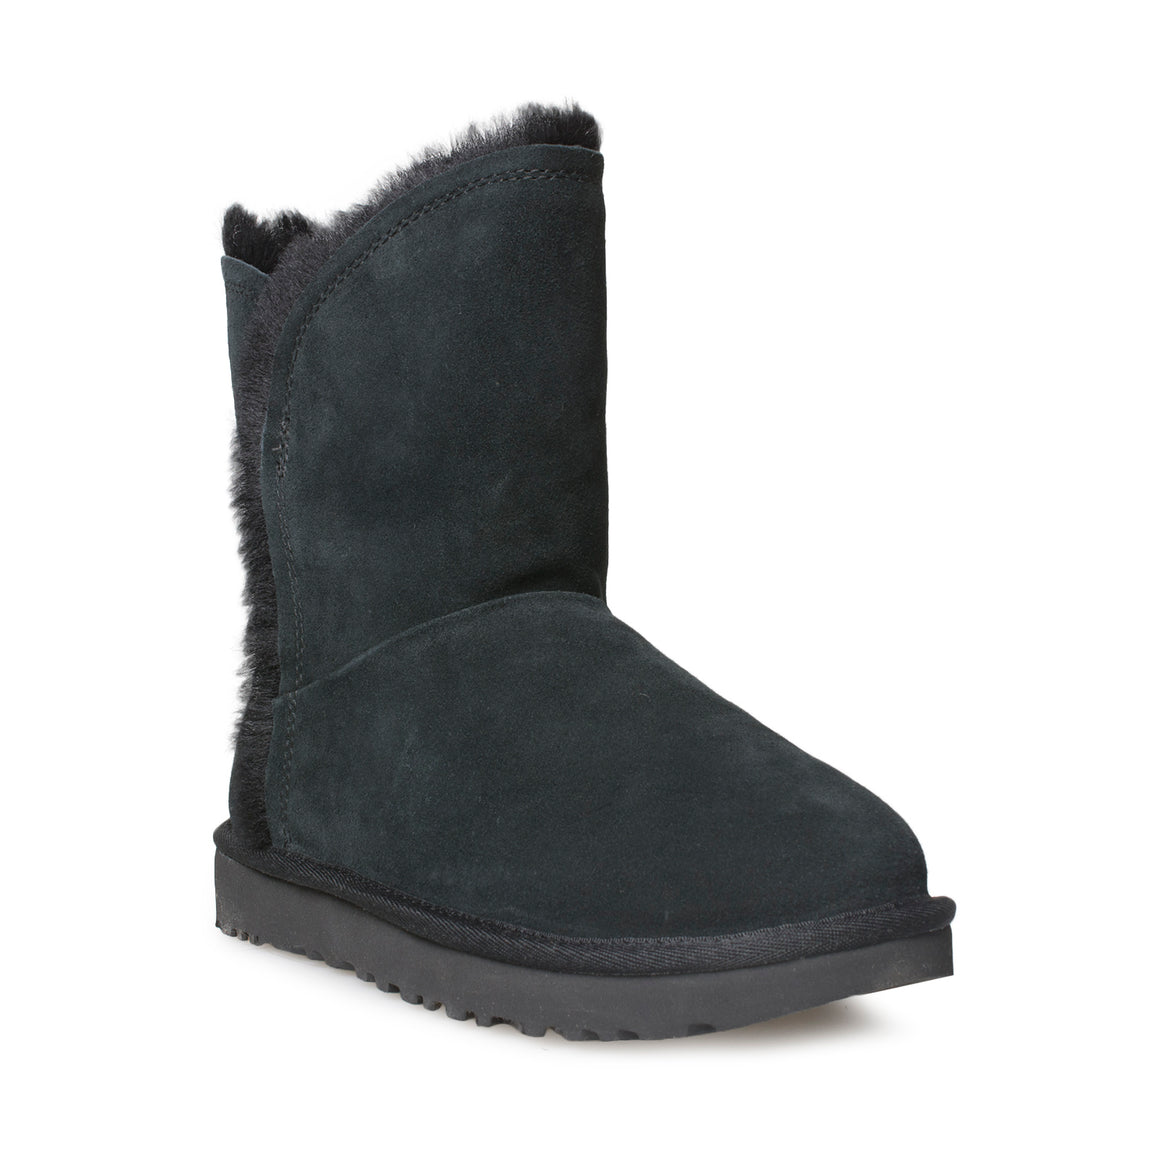 UGG Classic Short Fluff High Low Black Boots - Women's